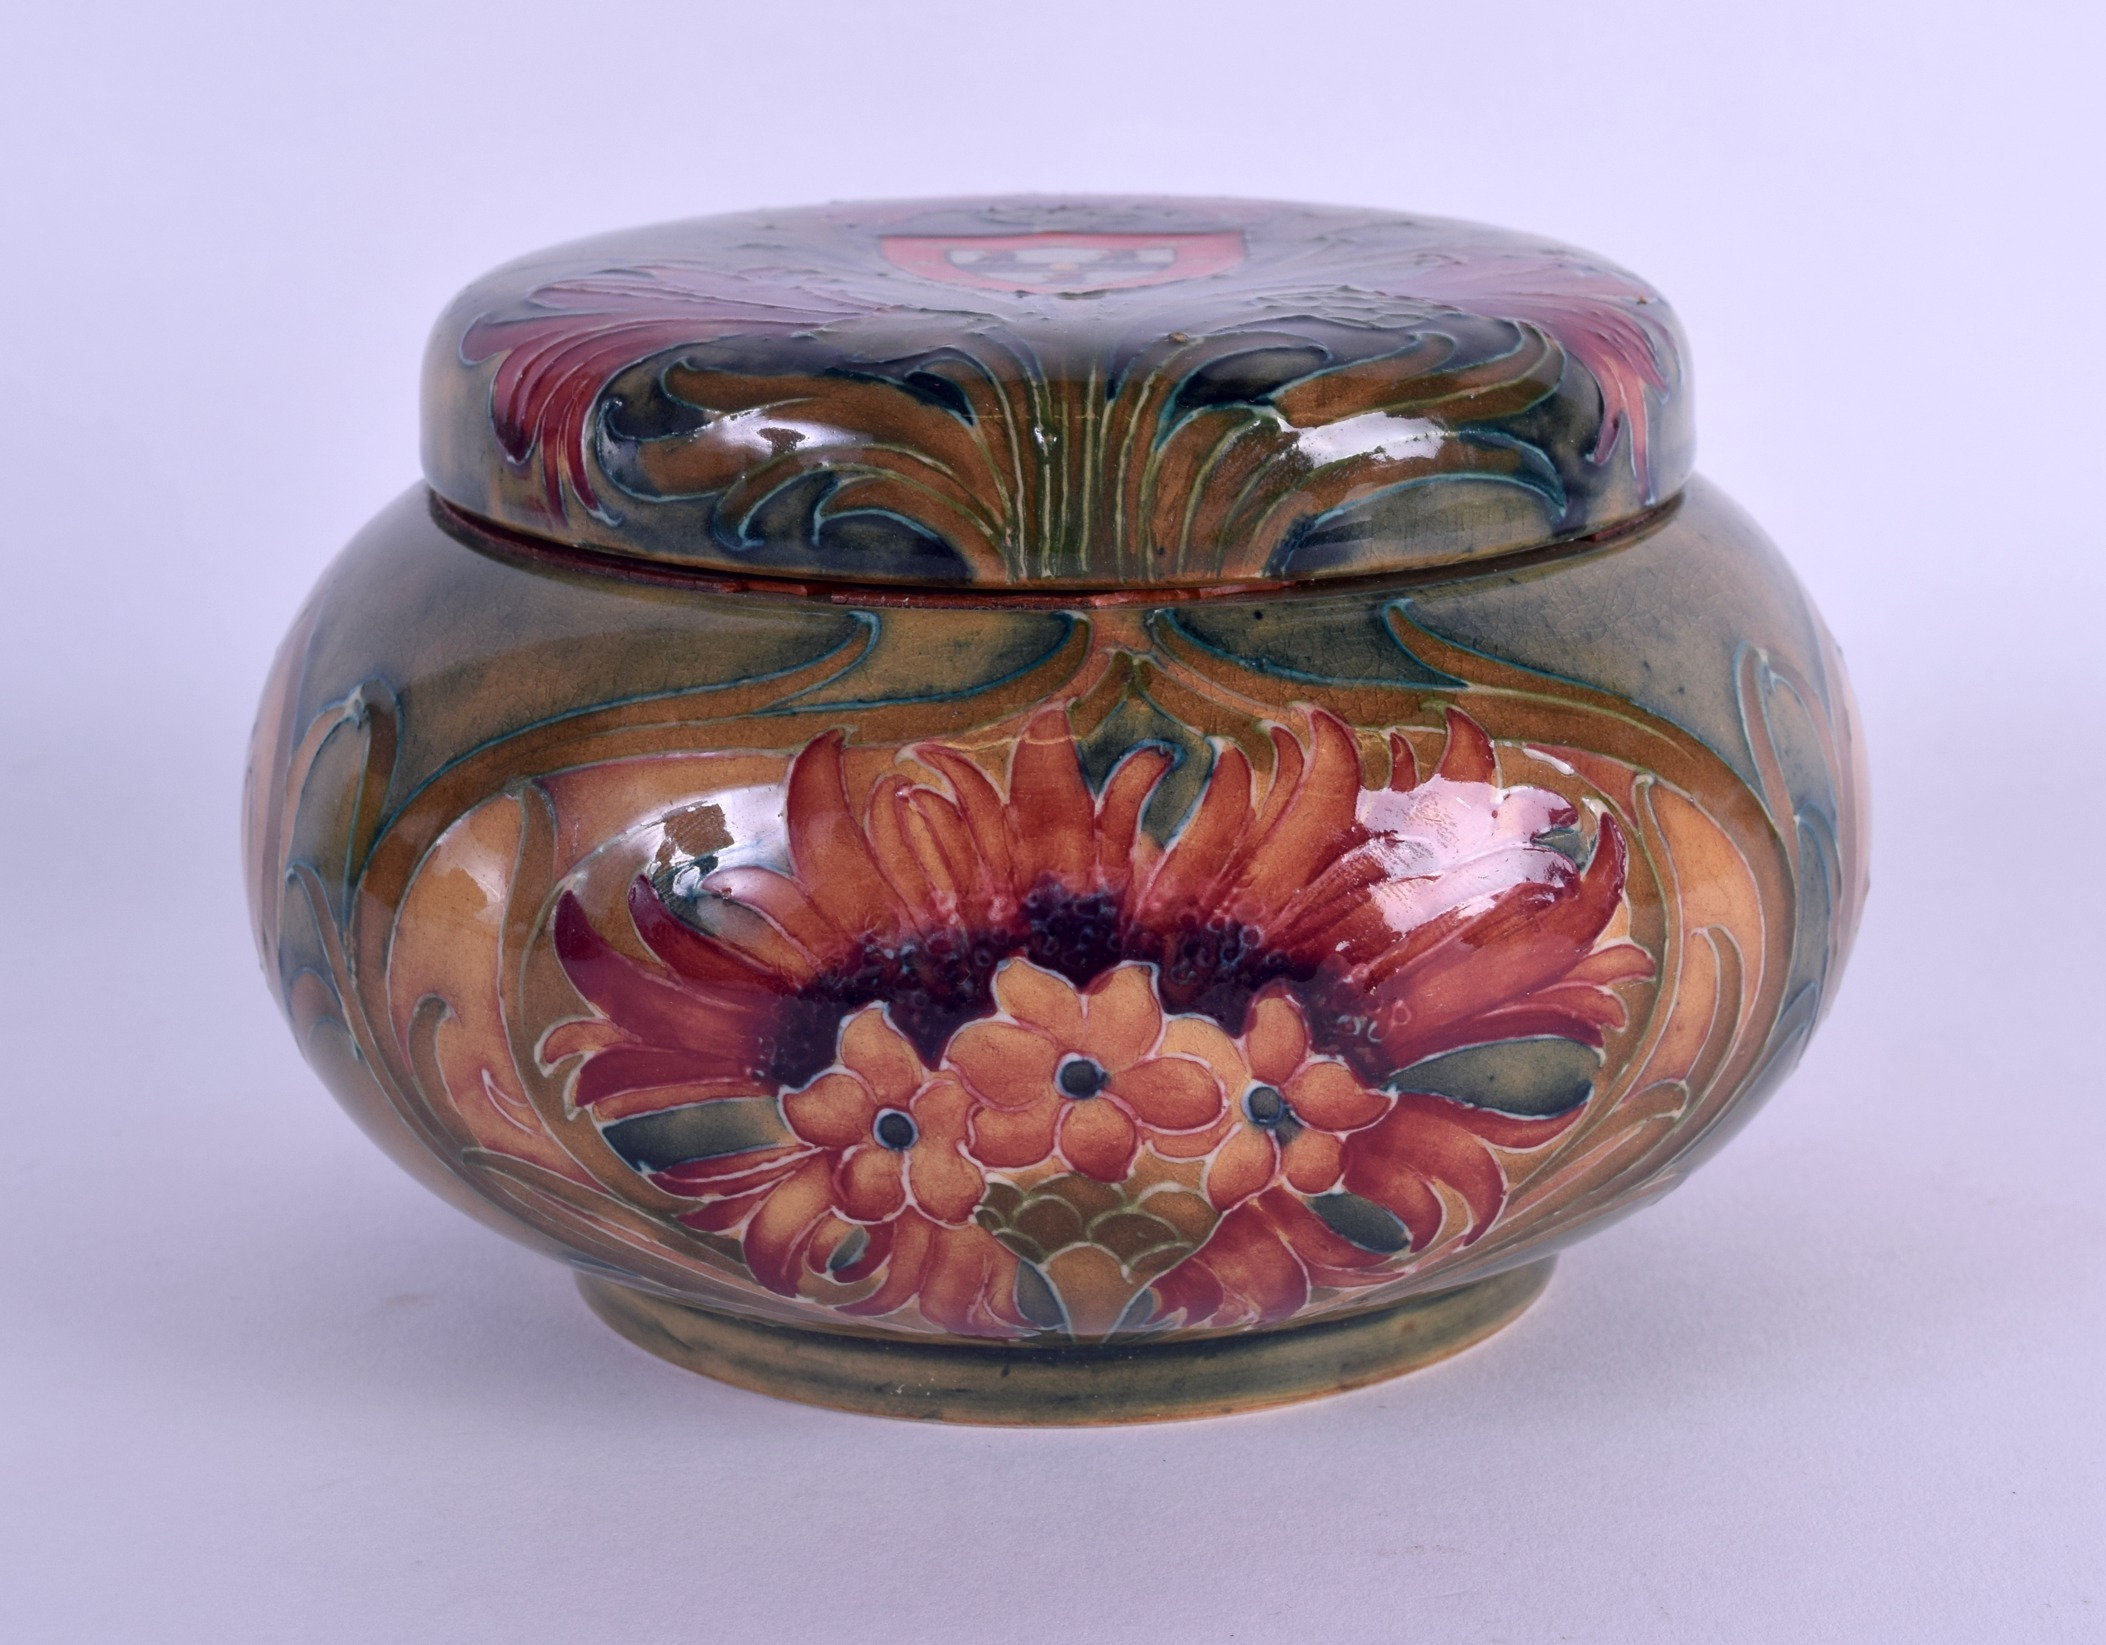 Lot 53 - A VERY RARE WILLIAM MOORCROFT ARMORIAL TOBACCO BOX AND COVER made for London's Oldest Pipe Shop